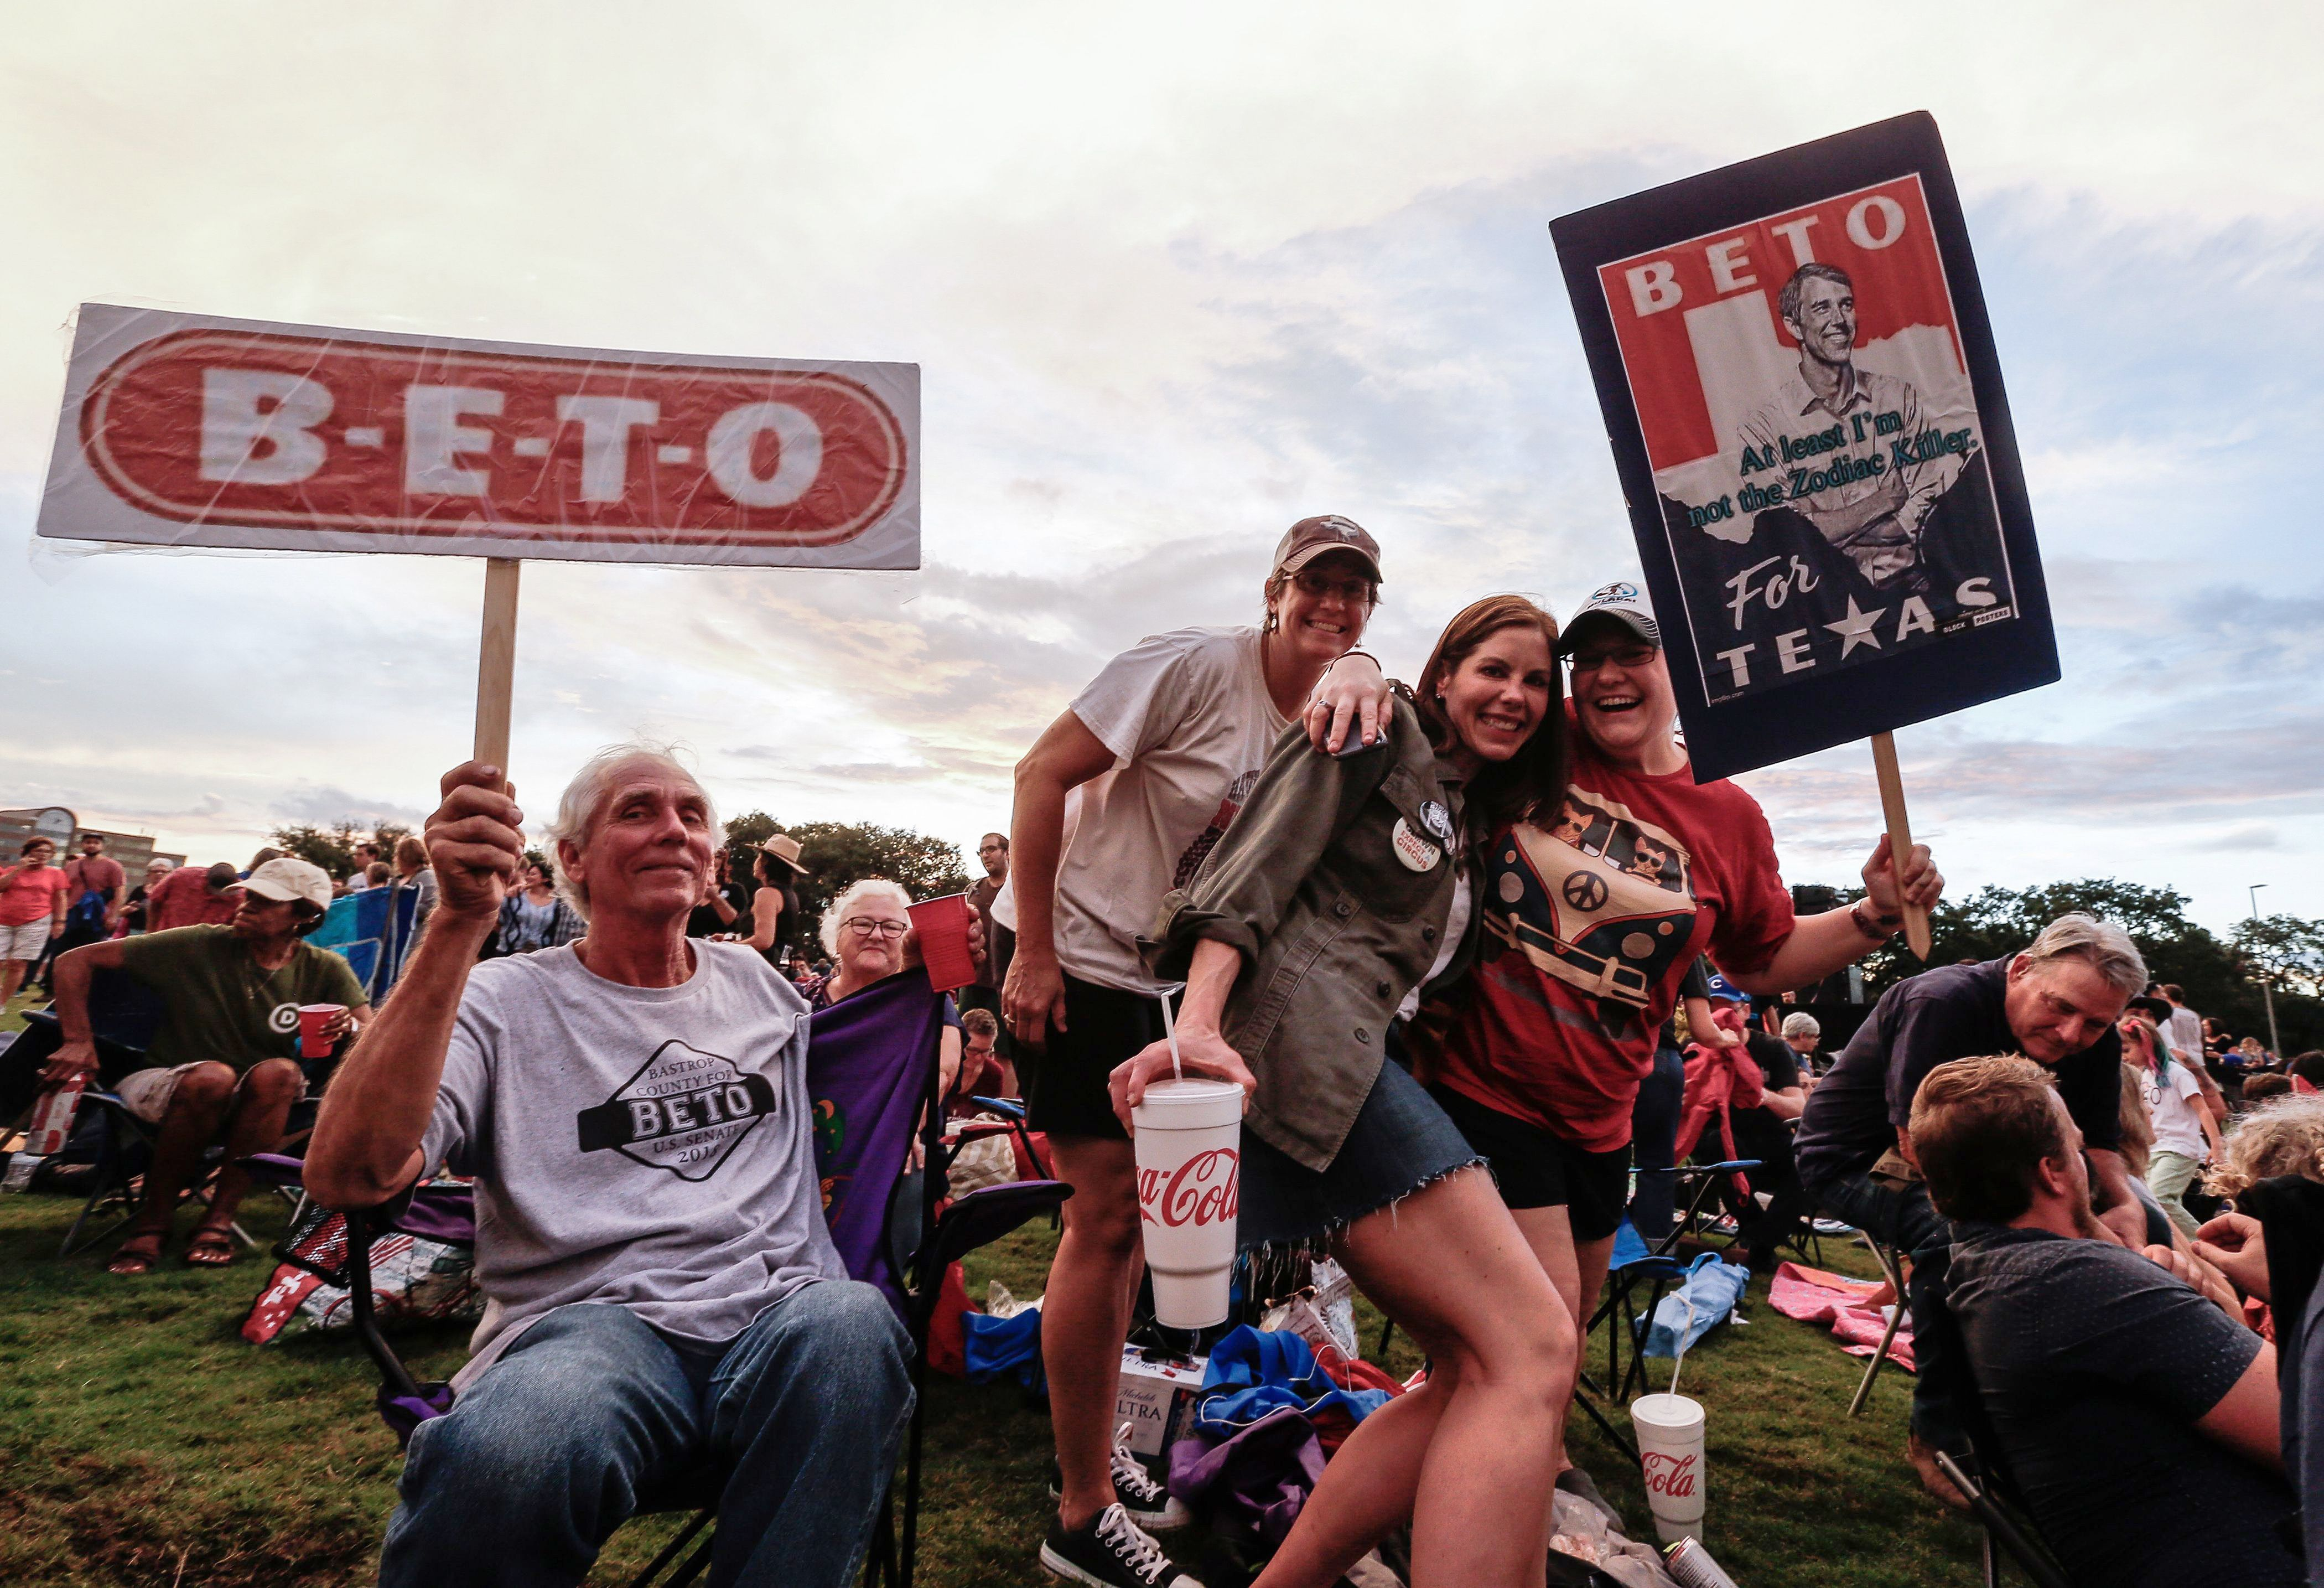 Supporters await US Senate candidate Beto O'Rourke in a Texas Rally tour with Willie Nelson's country music legend in Austin, Texas on September 29, 2018. Beto O & 39; Rouke runs against Senator Ted Cruz for the Senate. Texas Rally with Willie Nelson, Austin, USA - September 29, 2018